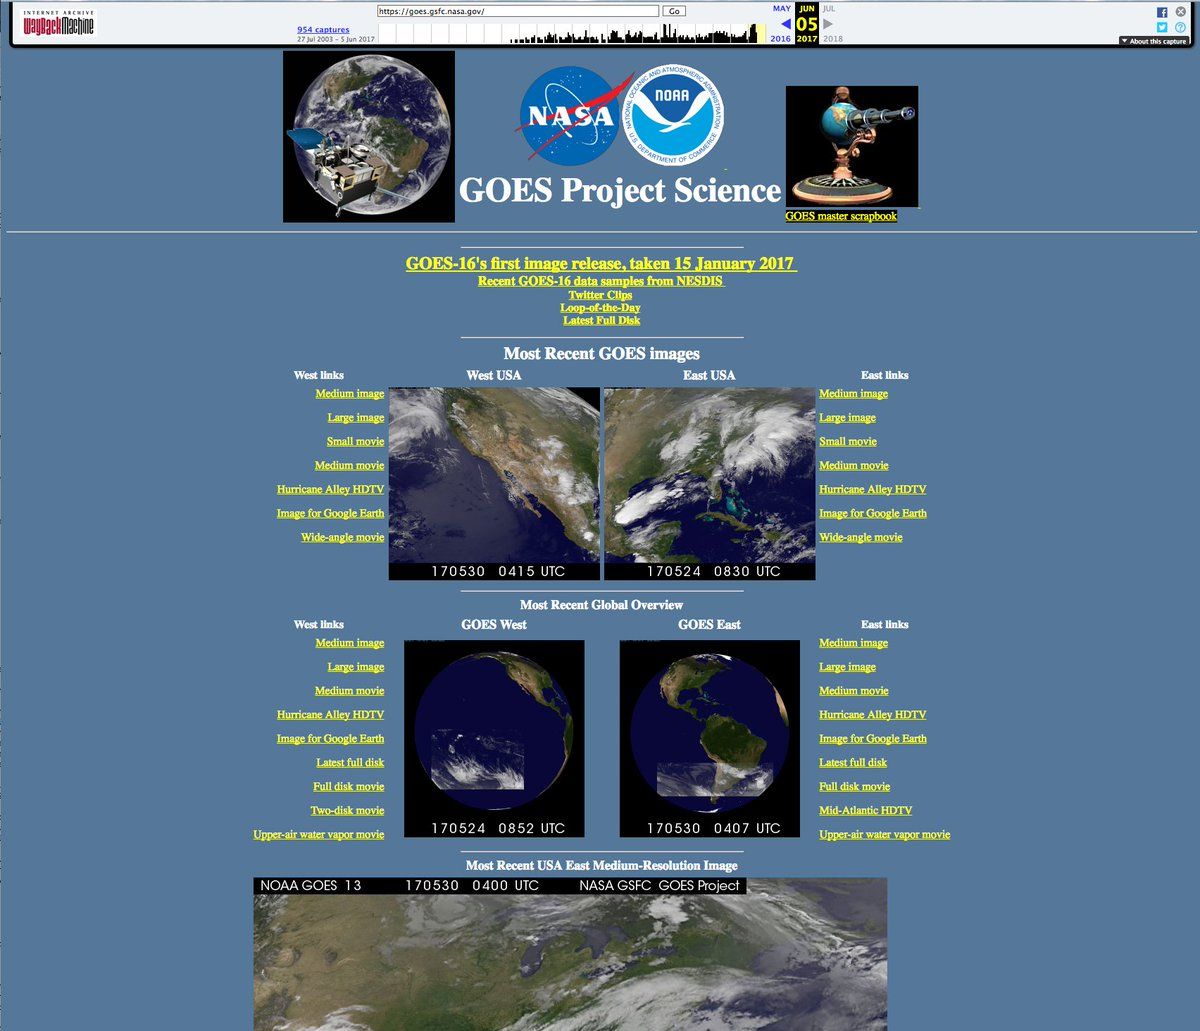 Can anyone view this #NASA website? https://t.co/6jLYyRCFf5 This is what it looked like on 5 Jun 2017. Lots of that Earth science stuff ...